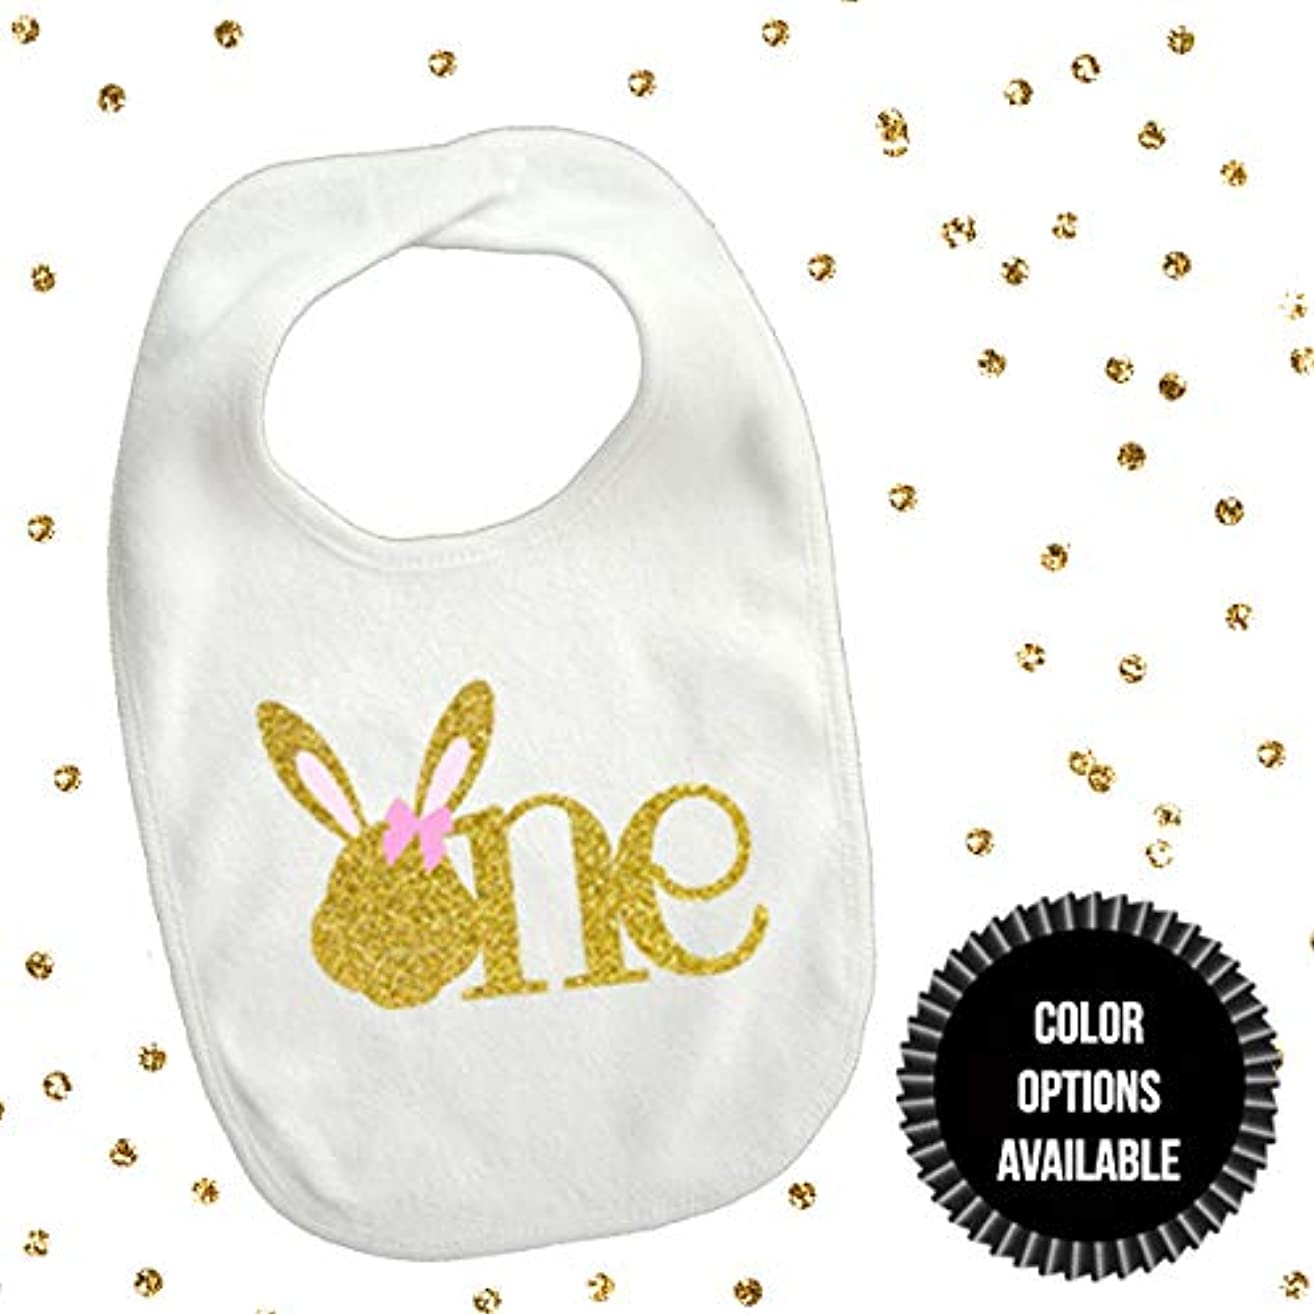 1 piece one bunny head pink bow and gold glitter bib toddler girl for first birthday gift cake smash photo prop some bunny is one